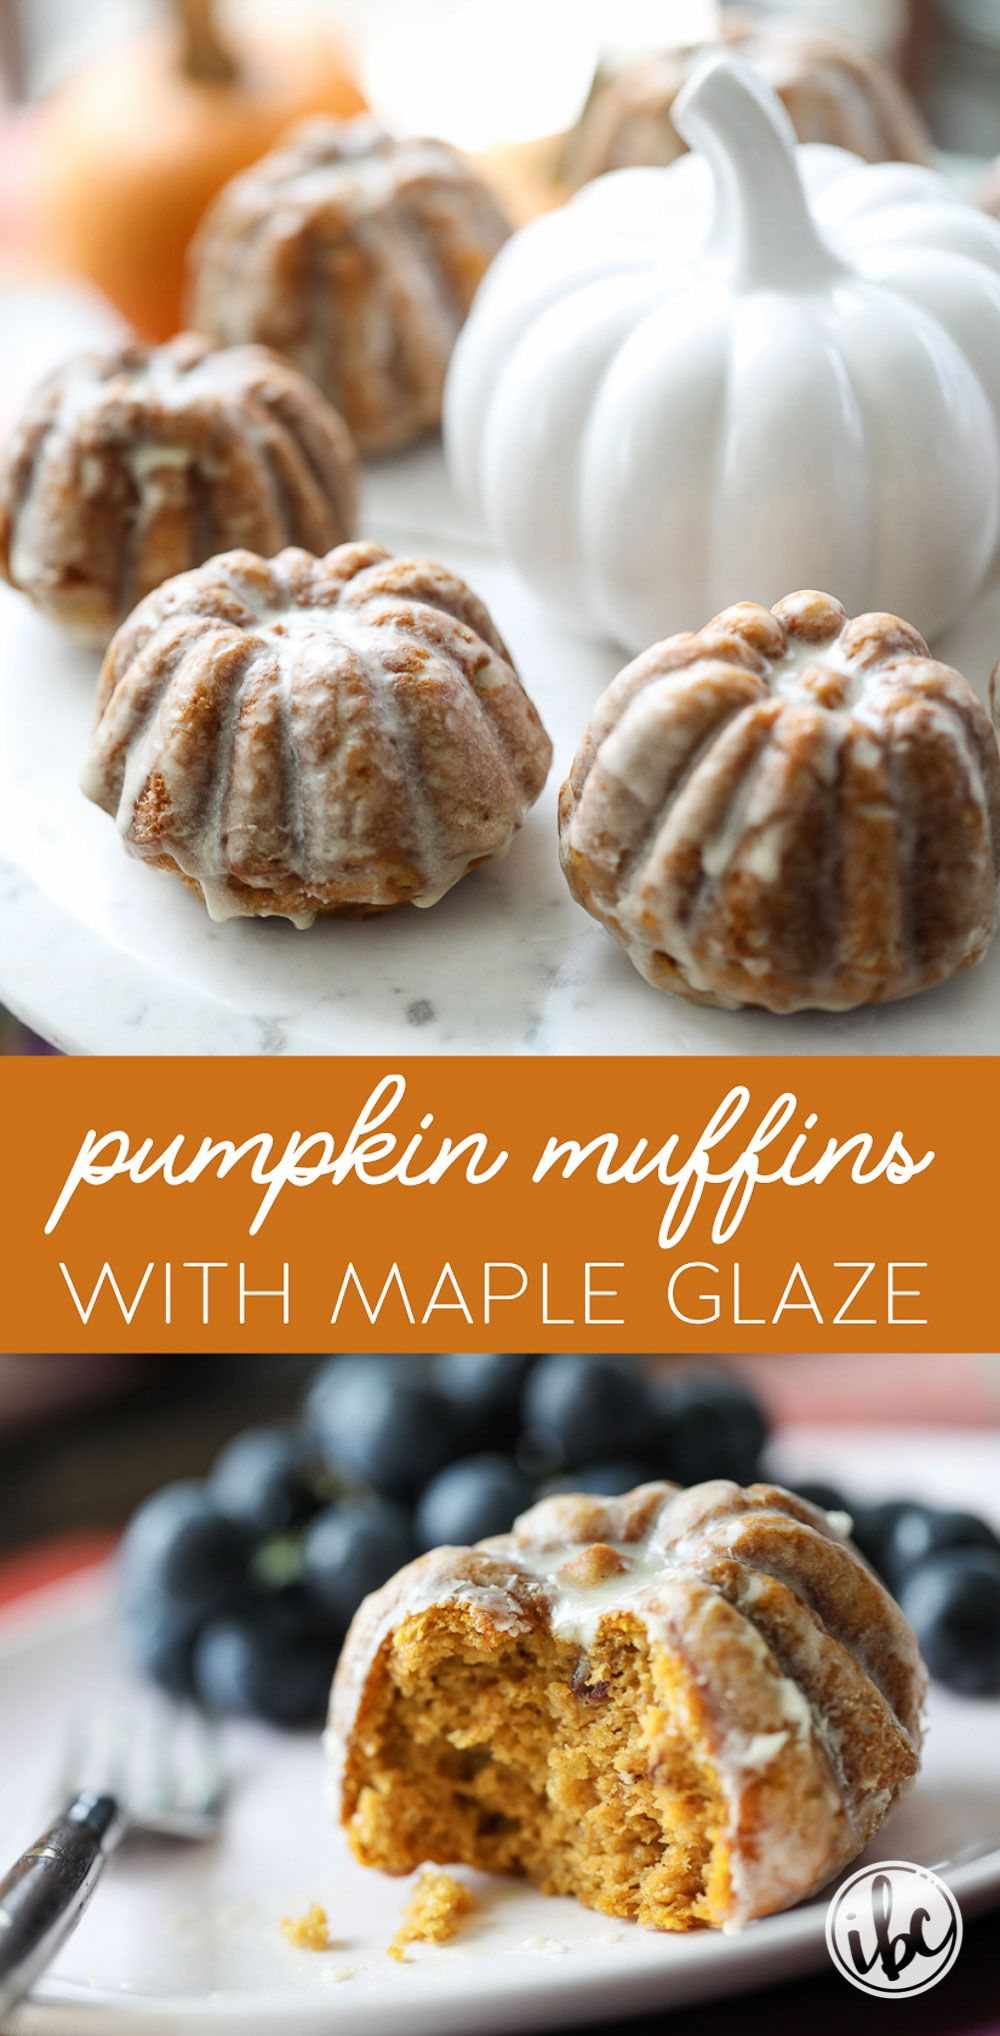 Pumpkin Muffins with Maple Glaze - easy and delcious recipe #pumpkinmuffins